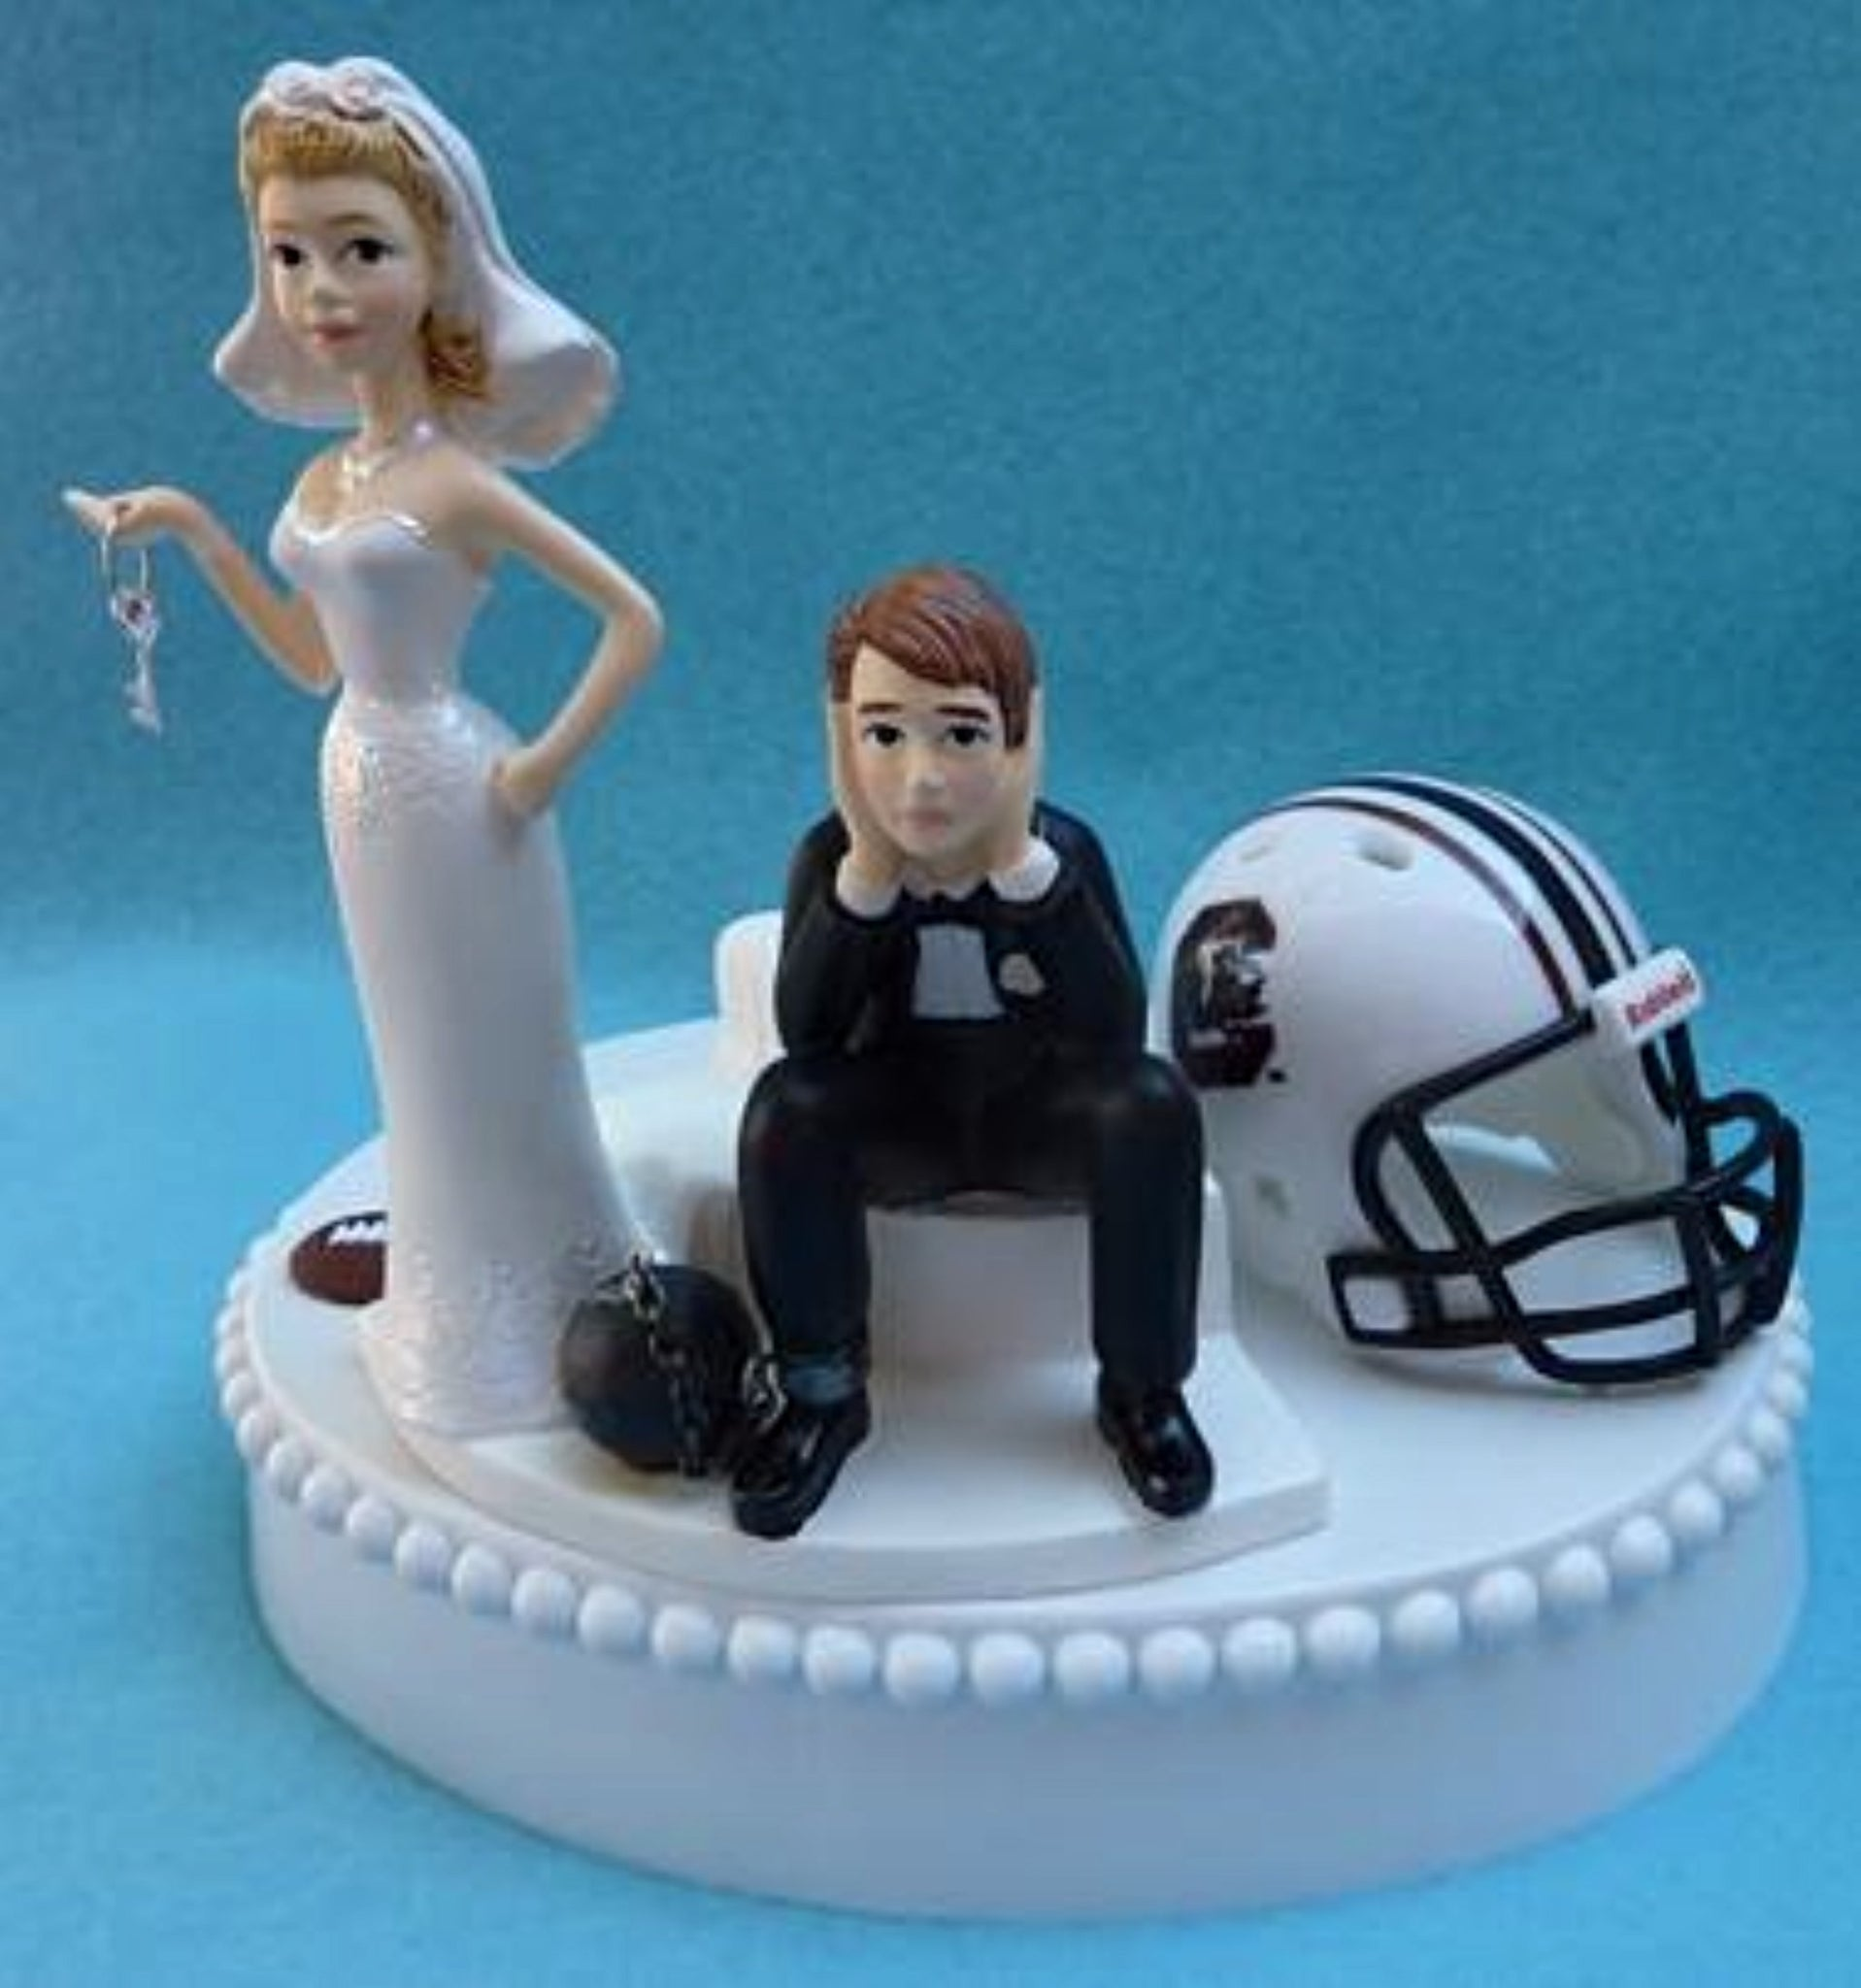 University of South Carolina Gamecocks wedding cake topper USC humorous football fans bride sad groom ball chain funny key Fun Wedding Things